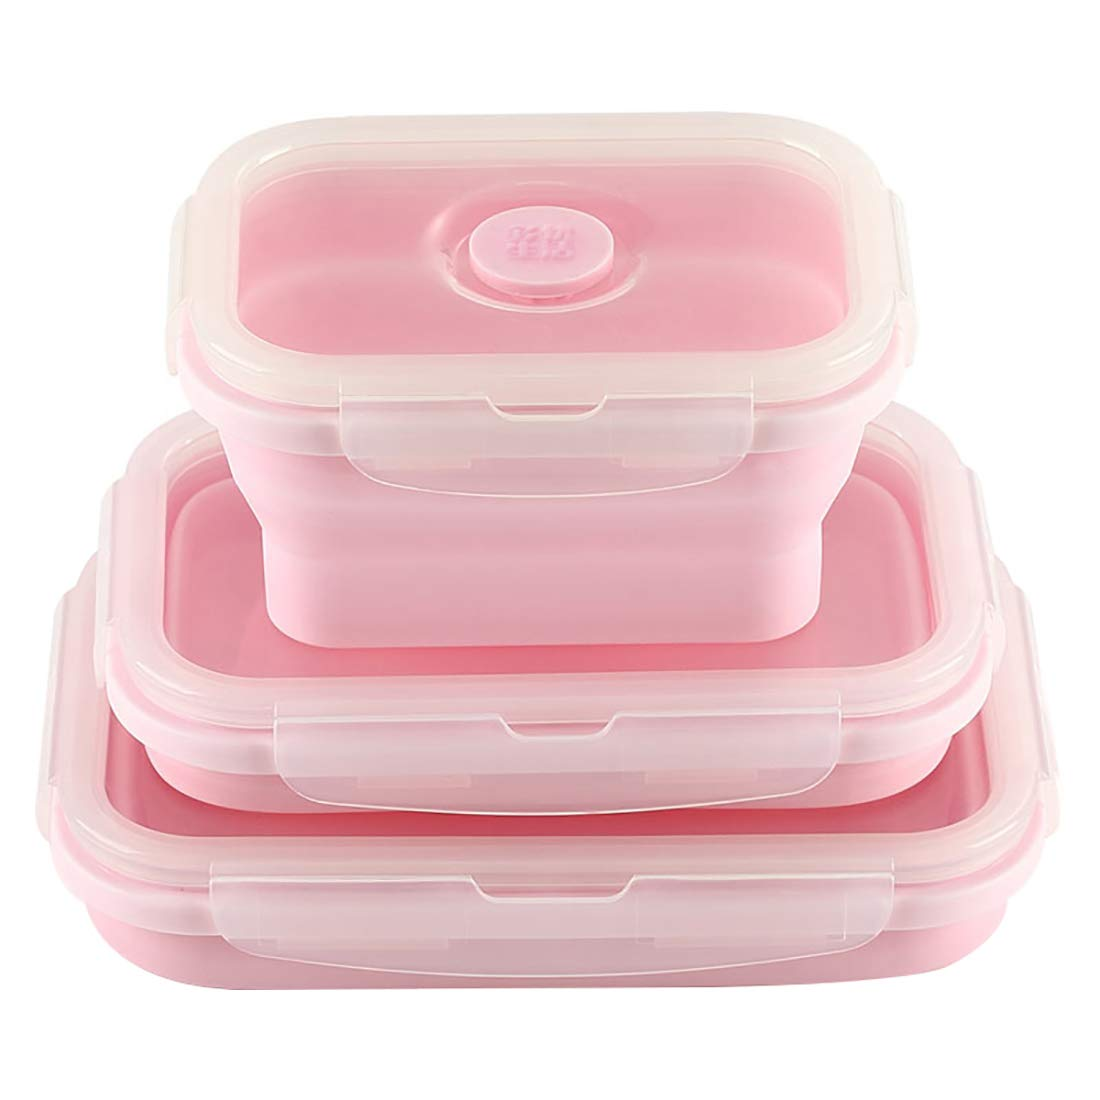 Duoyou Collapsible Silicone Lunch Bento Box, Portable Food Storage Container Outdoor Picnic Box Space Saving, Microwave, Dishwasher and Freezer Safe, 3 Pcs Set